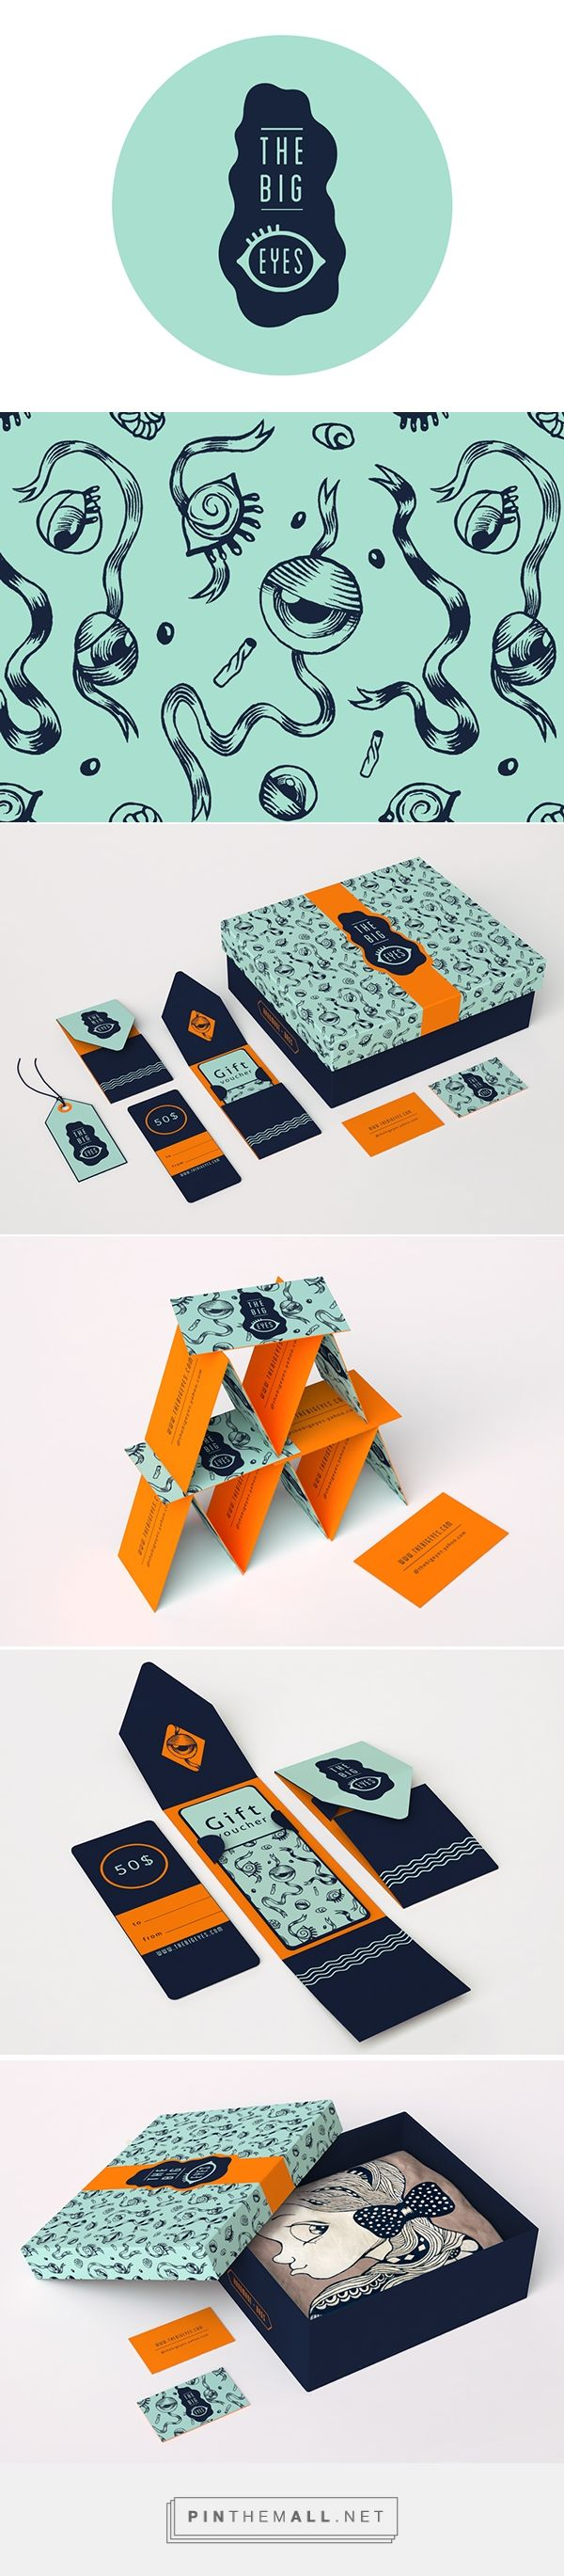 THEBIGEYES on Behance by lo Anto curated by Packaging Diva PD. Branding and packaging design THEBIGEYES handmade shop specialized in creating beautiful and unique pieces of handmade items.